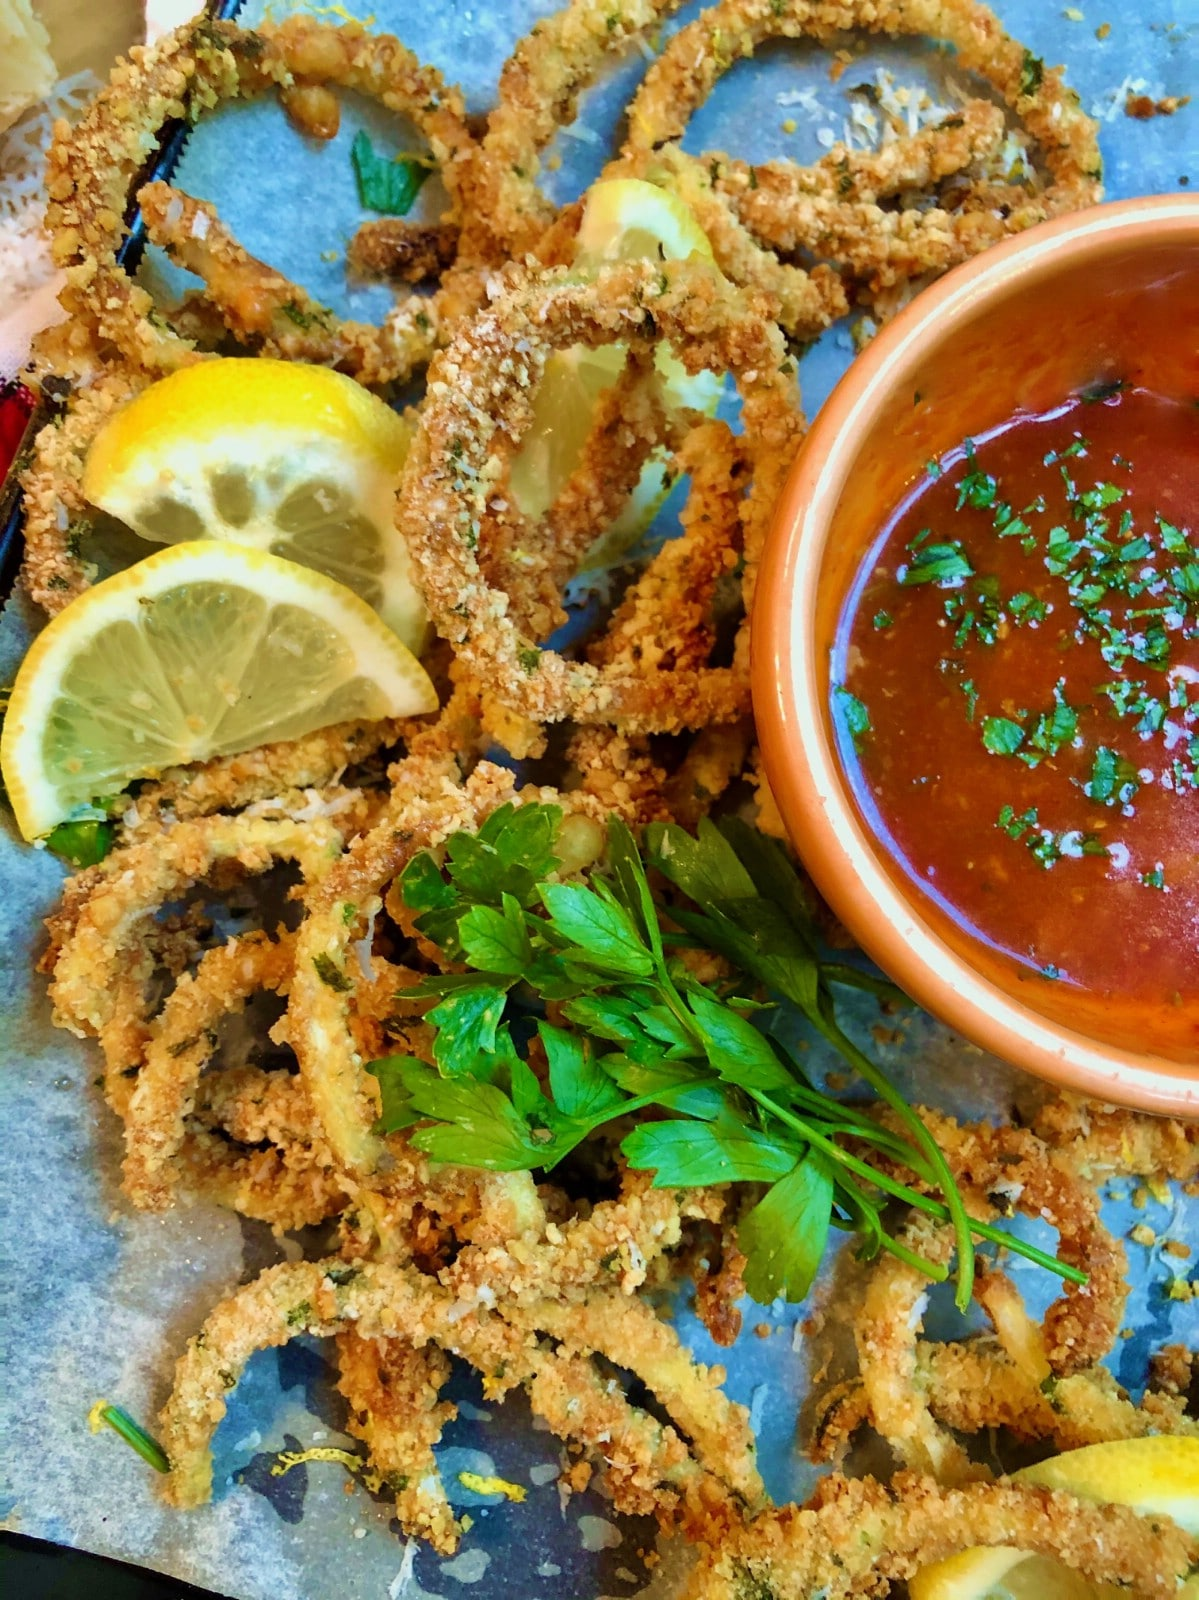 Zucchini fries by bowl of dipping sauce